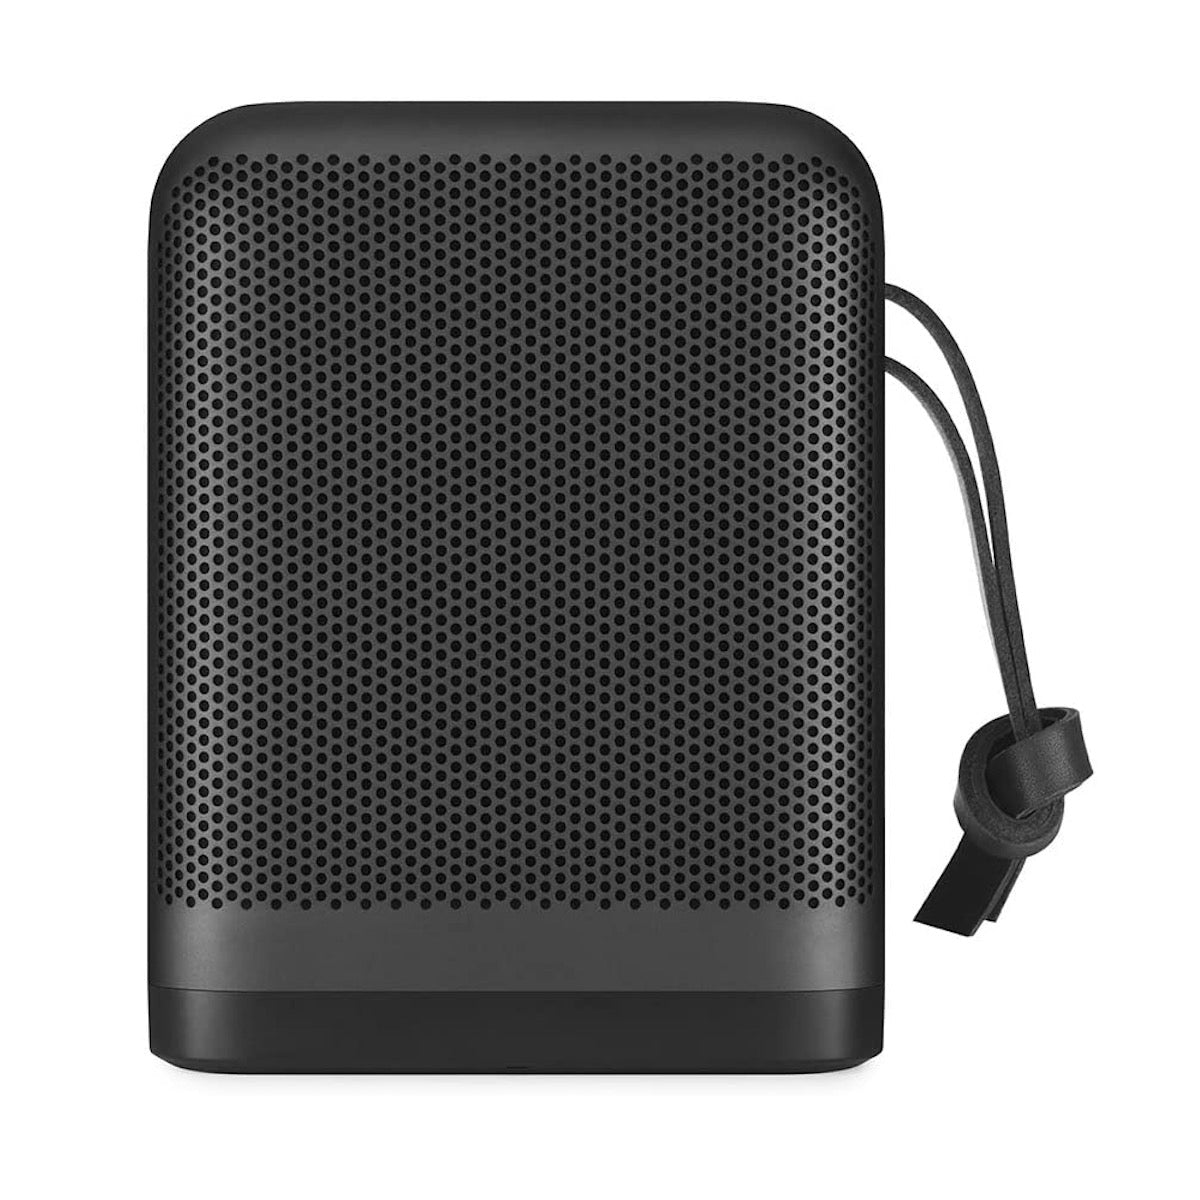 Bang & Olufsen Beoplay P6 - Portable Bluetooth Speaker, Bang & Olufsen, Portable Bluetooth Speaker - AVStore.in